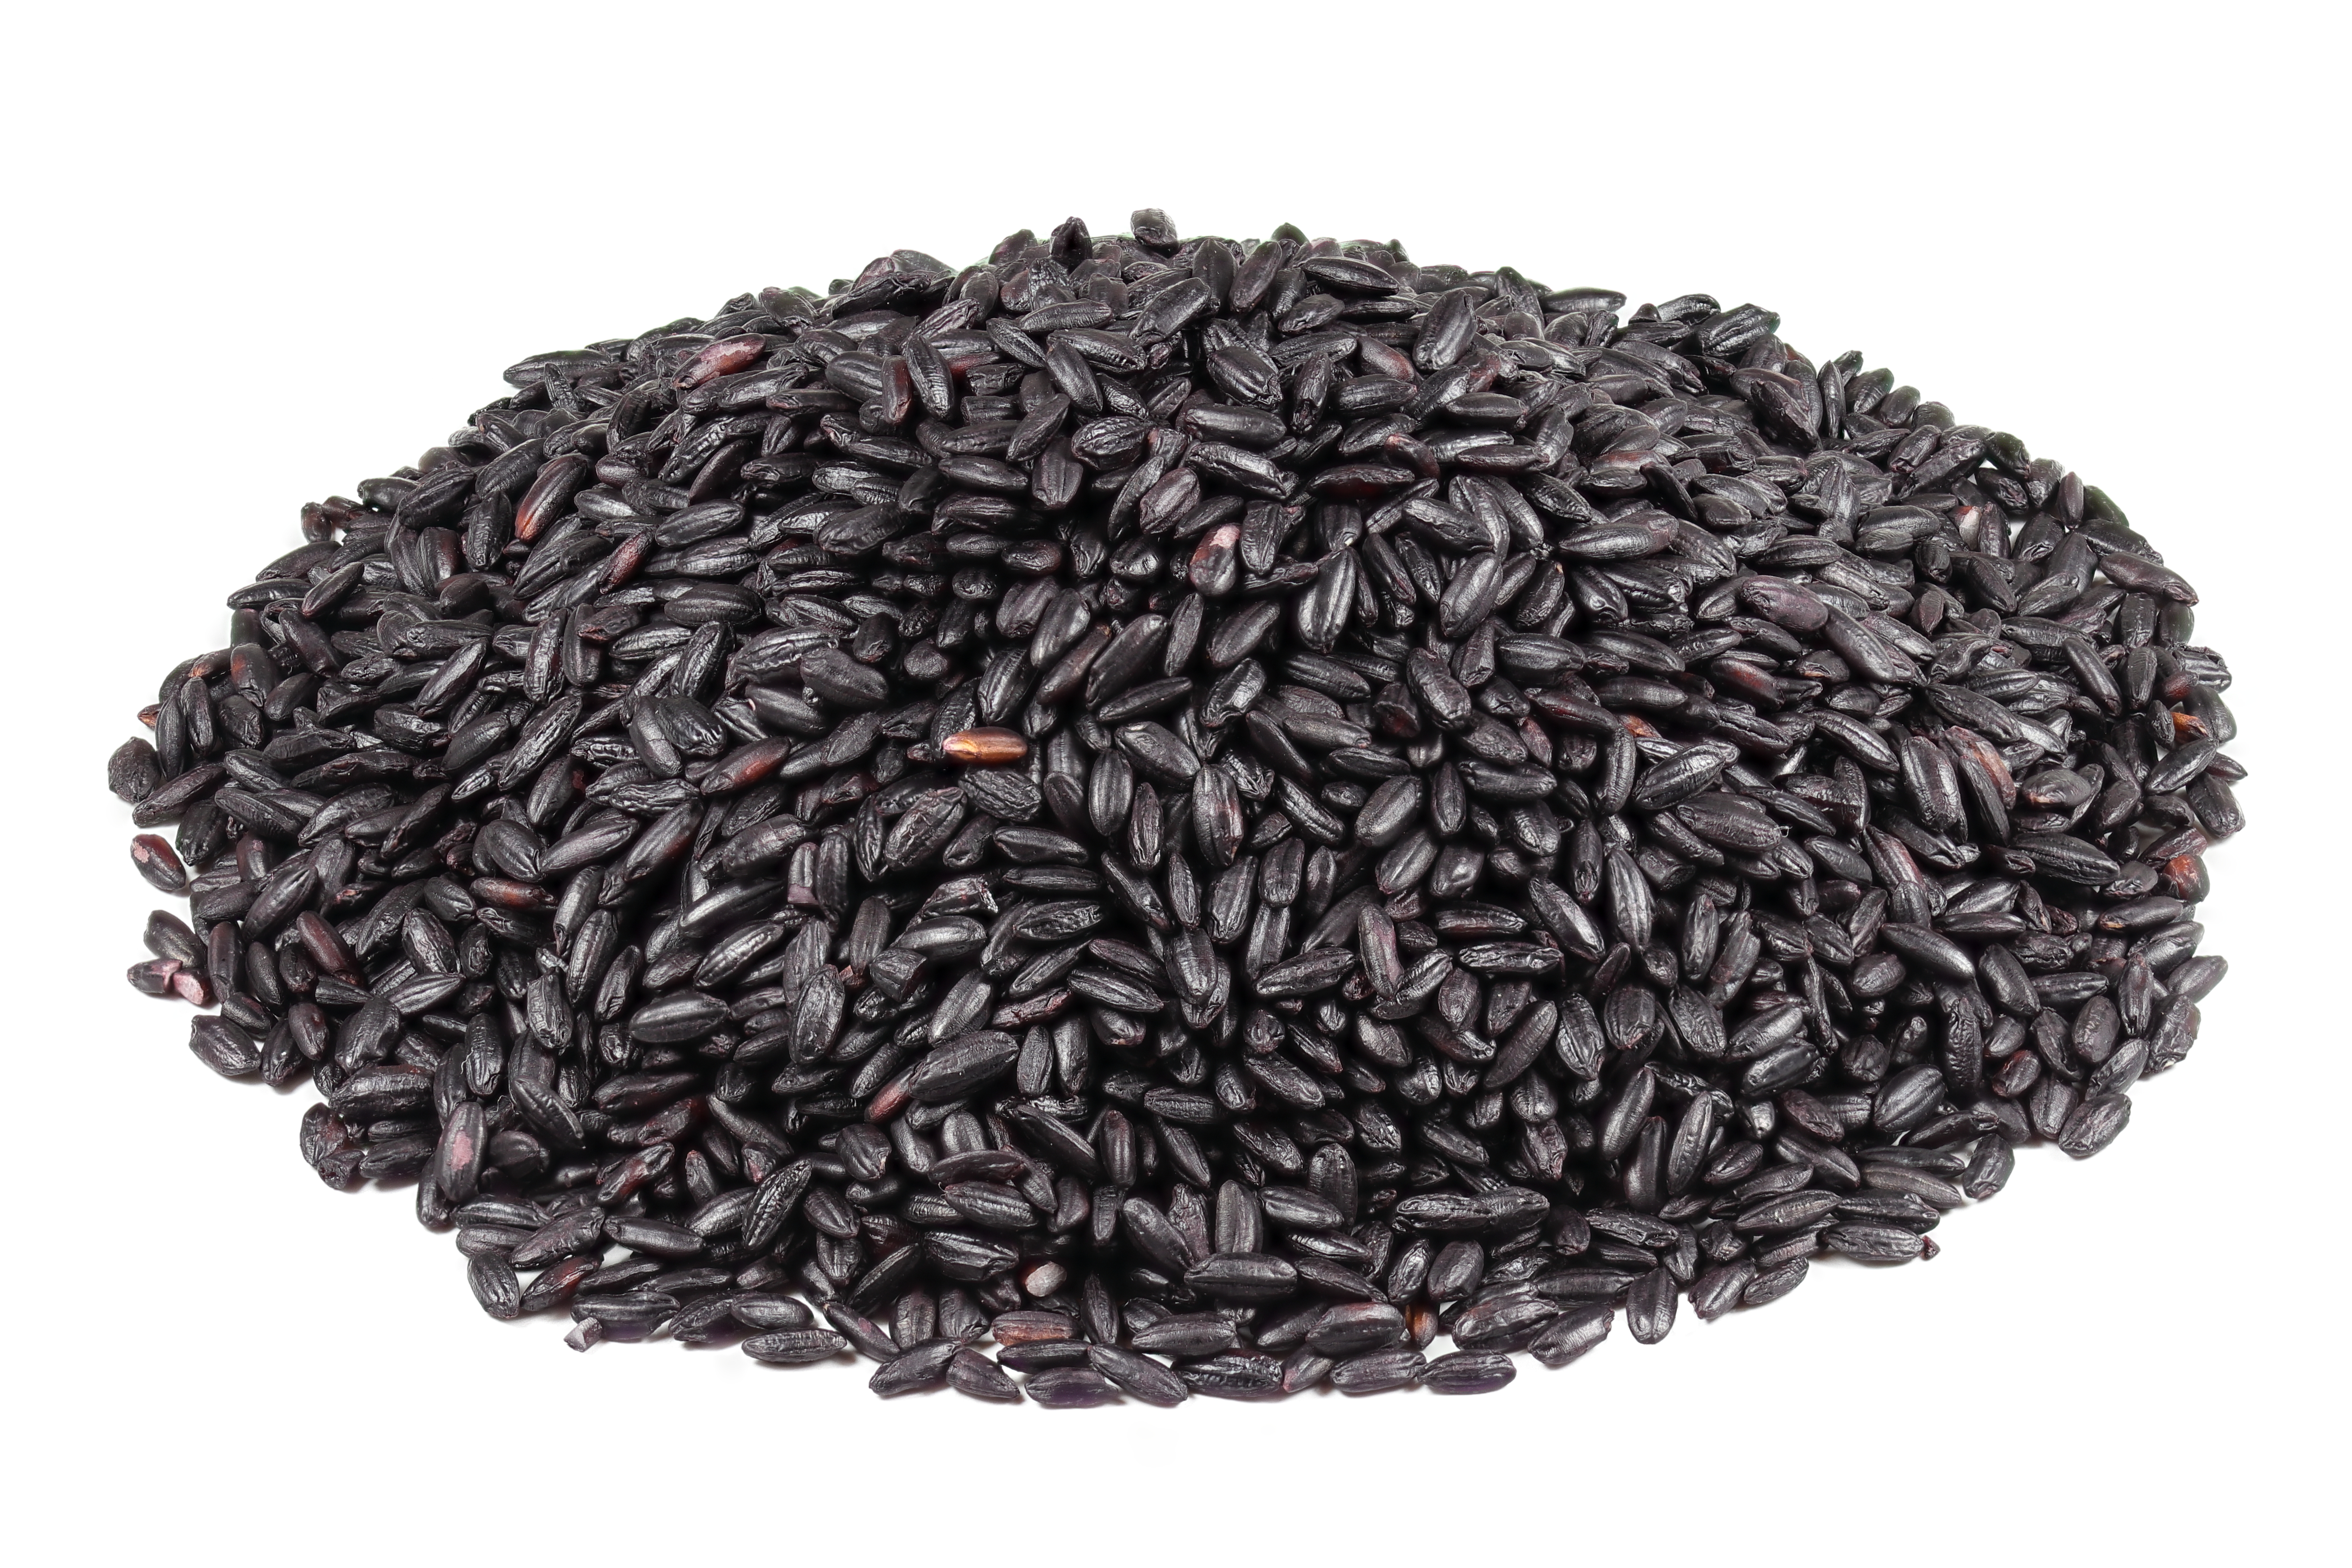 Black Rice  By Sanjay Acharya - Own work, CC BY-SA 4.0, https://commons.wikimedia.org/w/index.php?curid=63999399